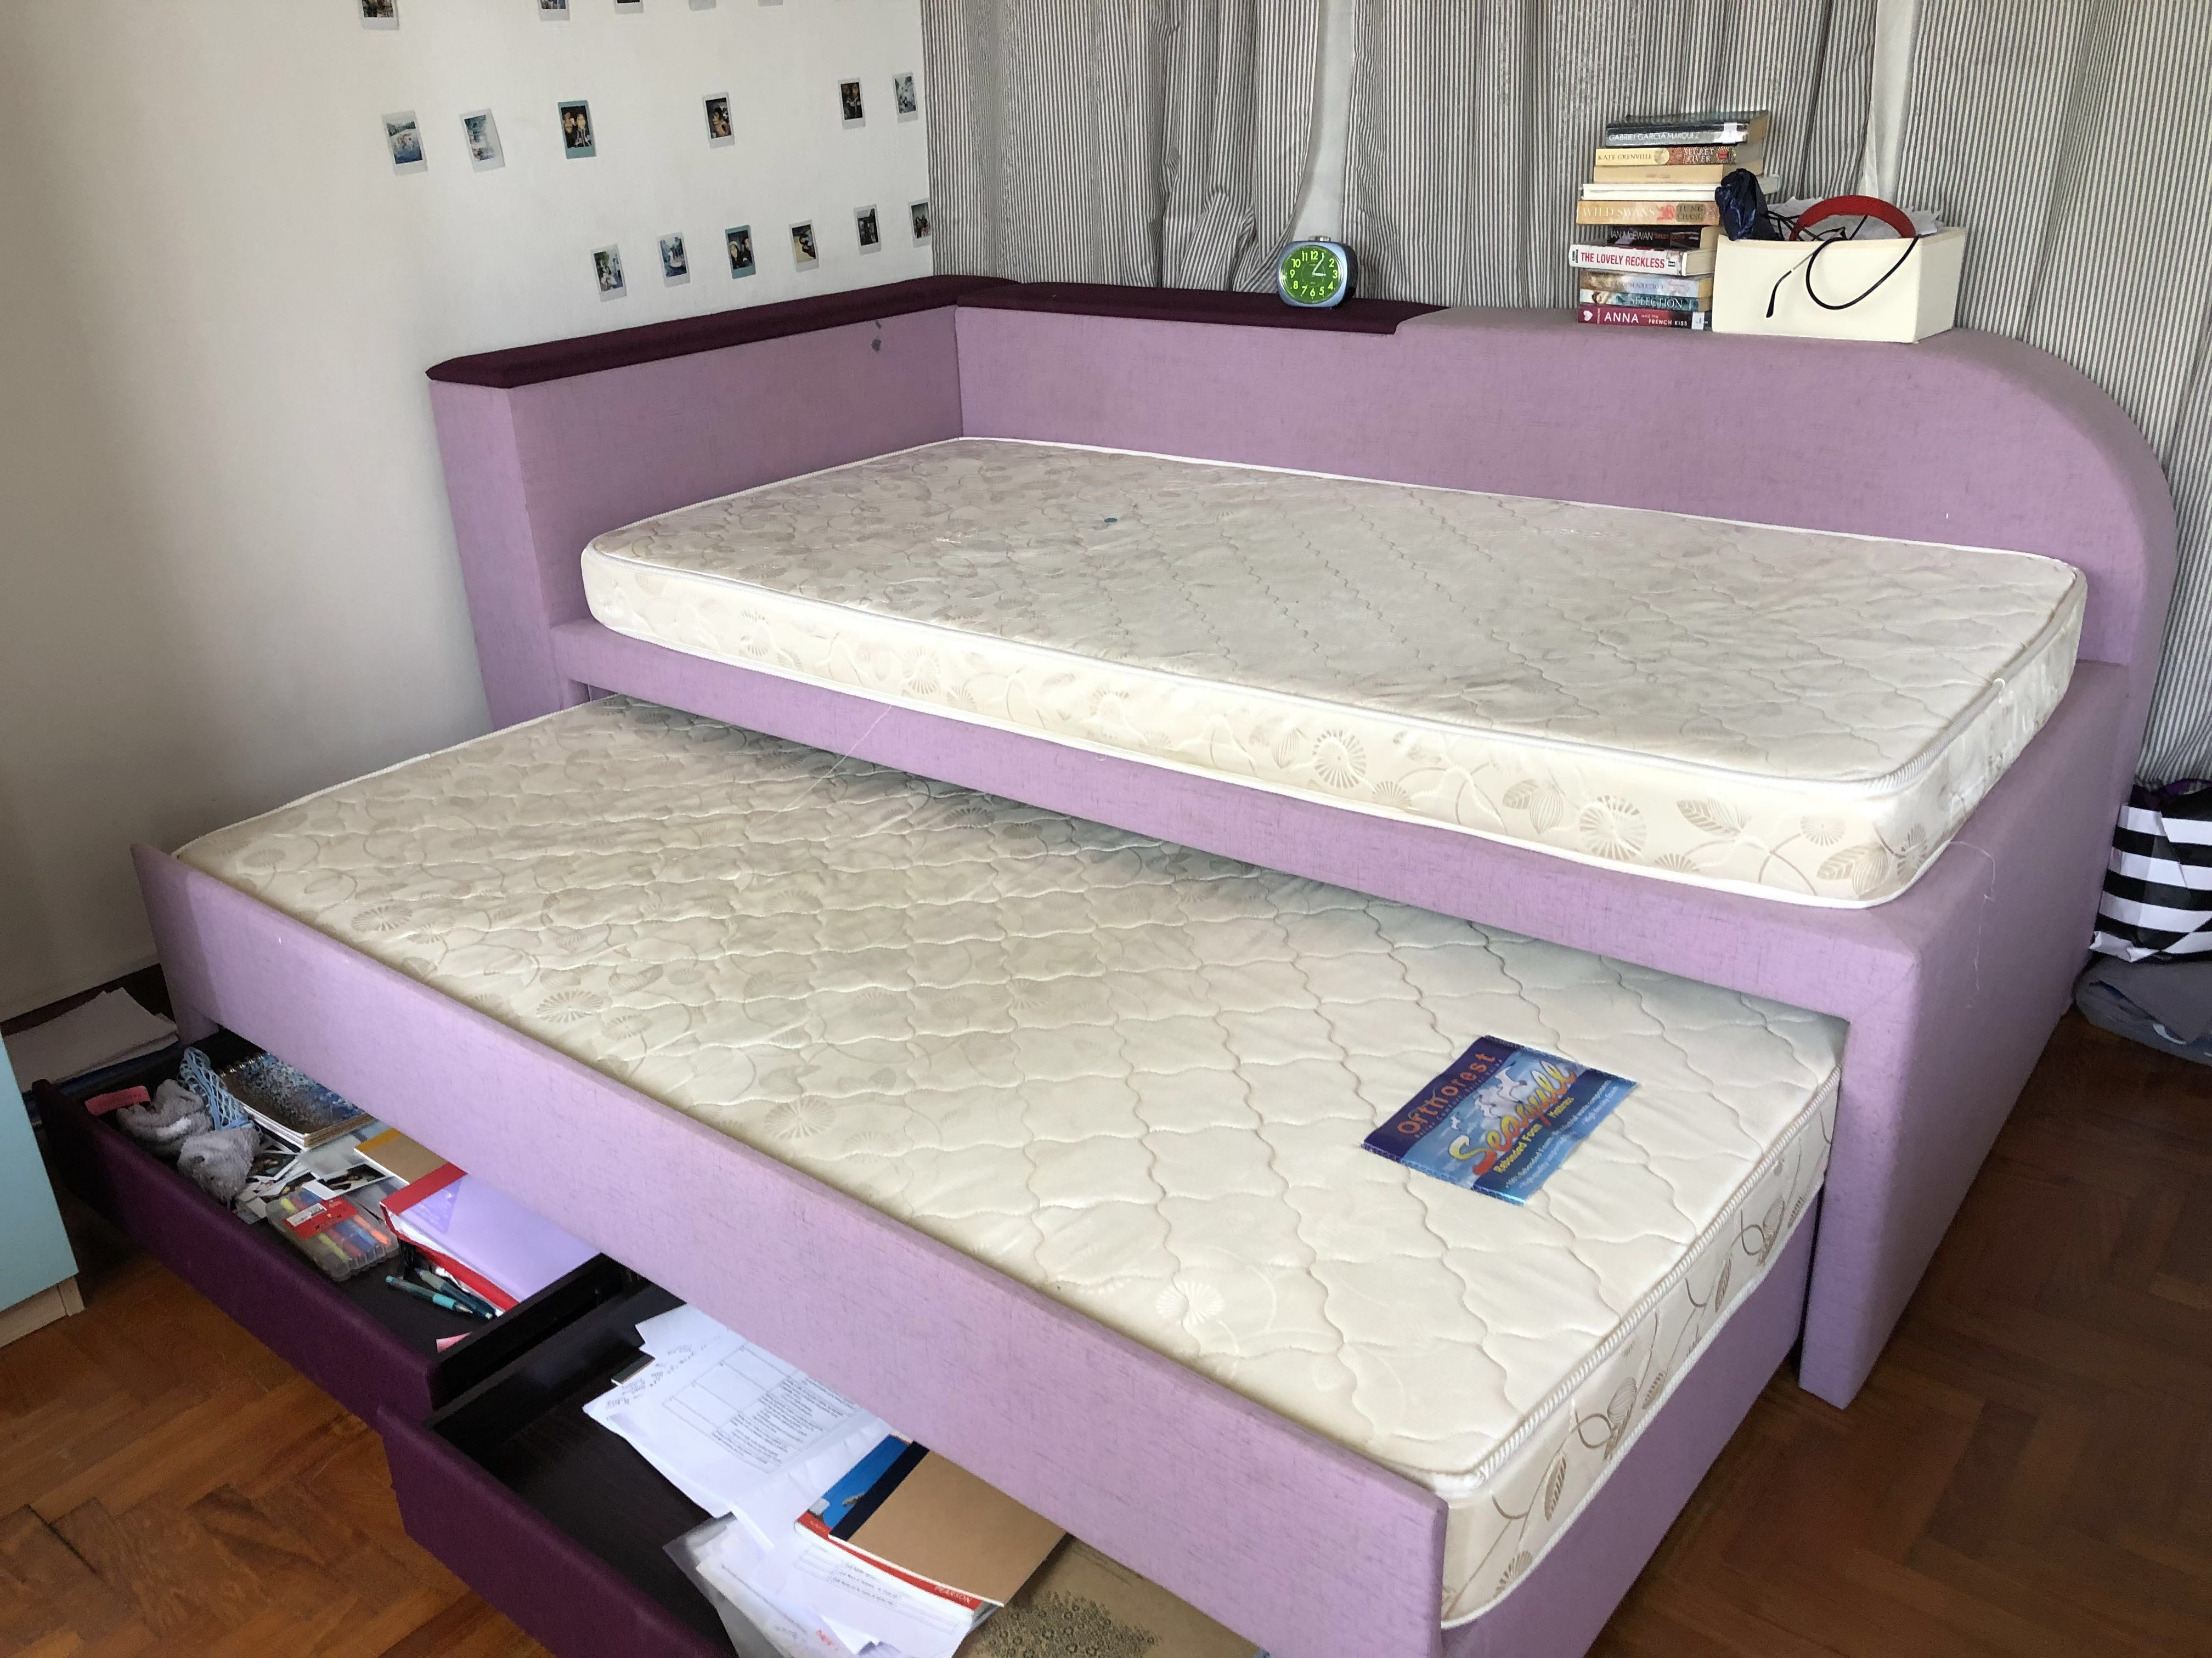 Picture of: Pull Out Single Double Bed With Storage Mattress 100 Furniture Beds Mattresses On Carousell